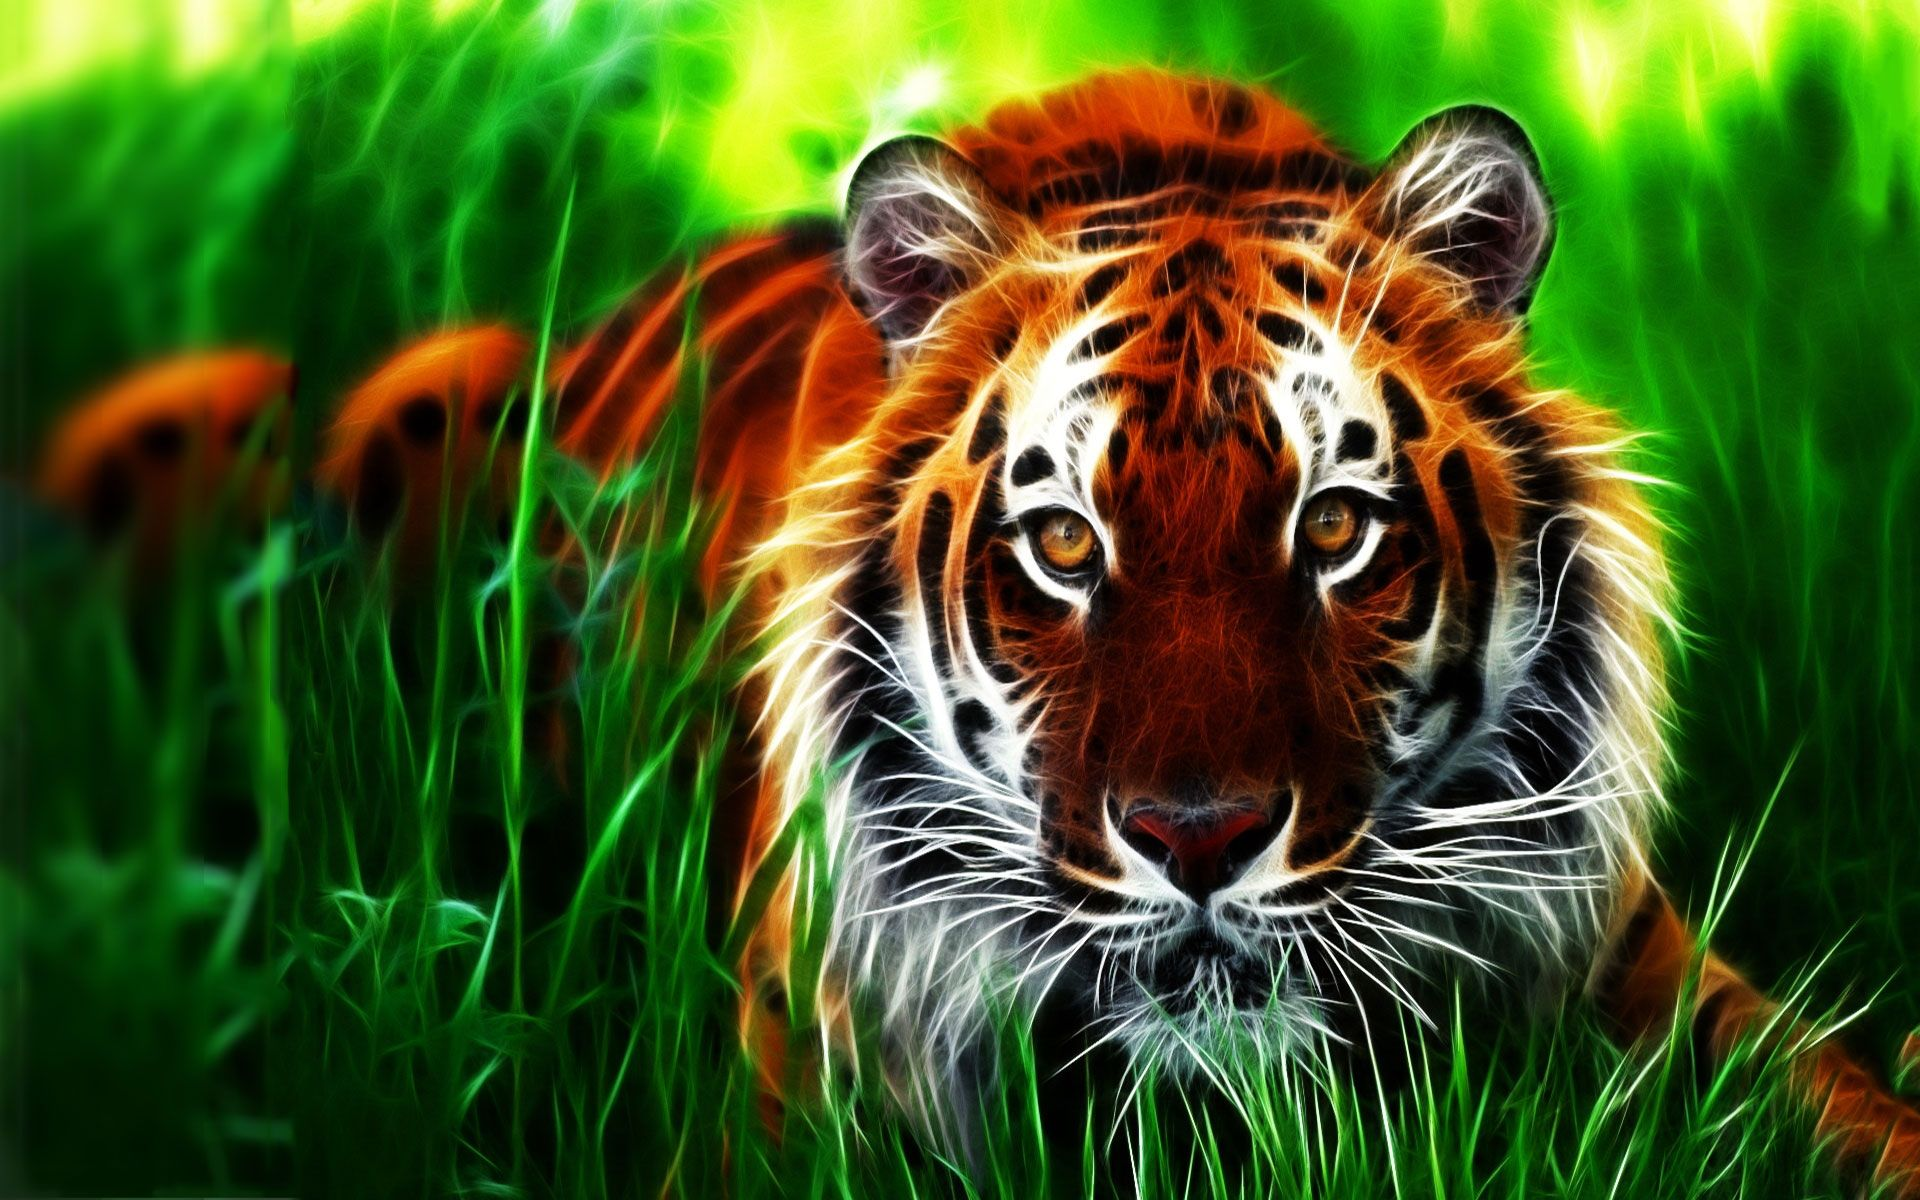 Best 3D Animal Wallpaper Tiger wallpaper, Tiger pictures